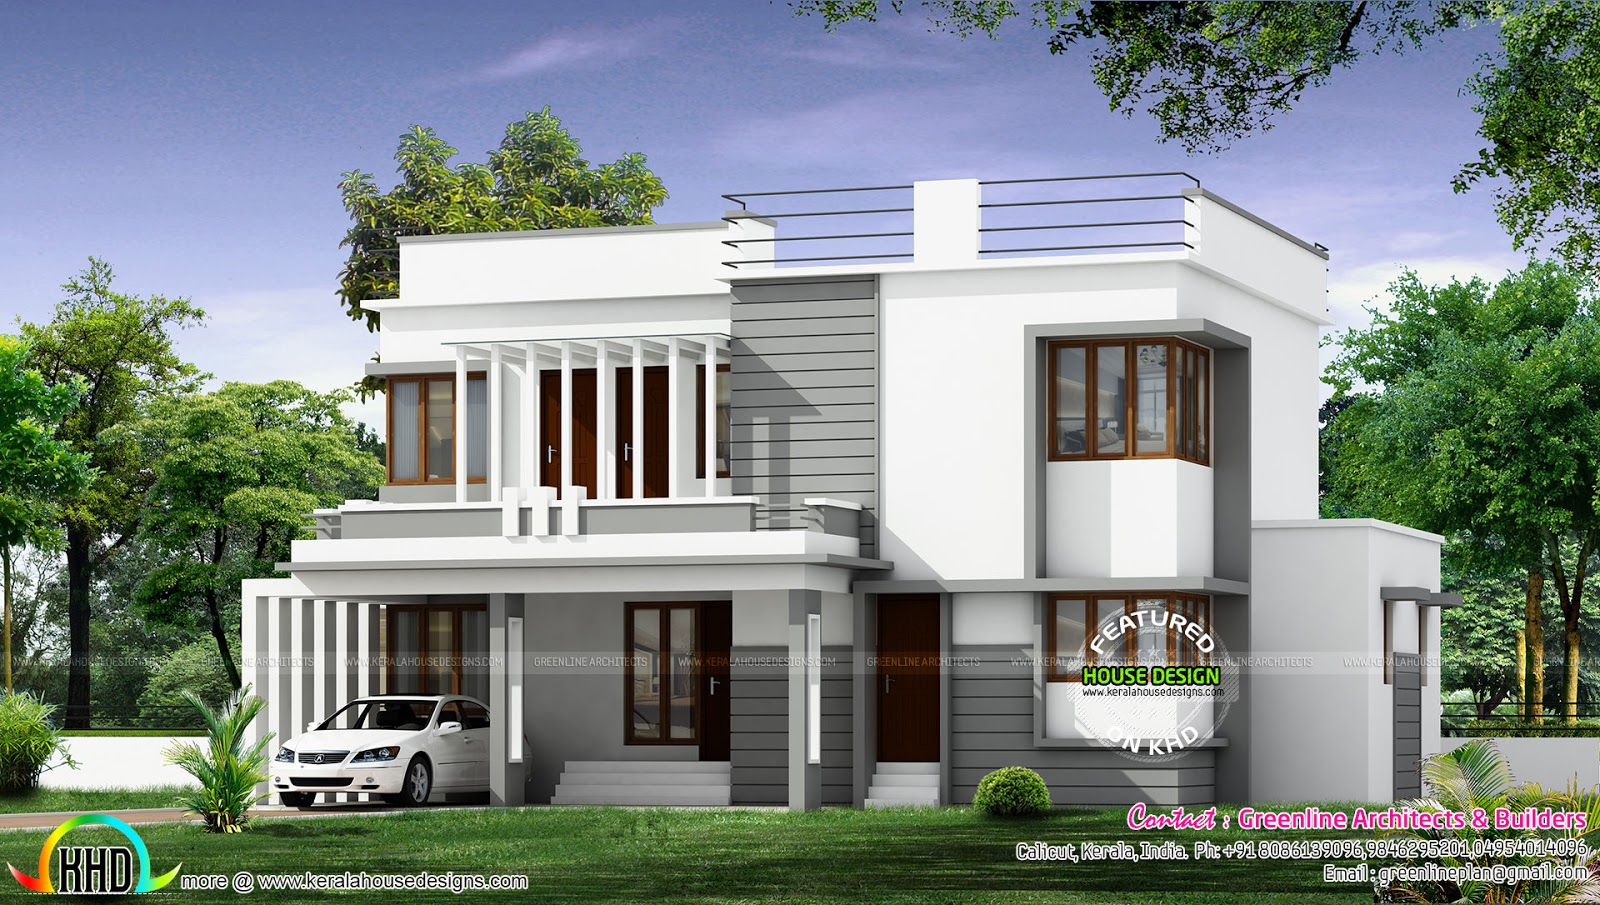 New modern house architecture kerala home design and floor plans - New house design ...